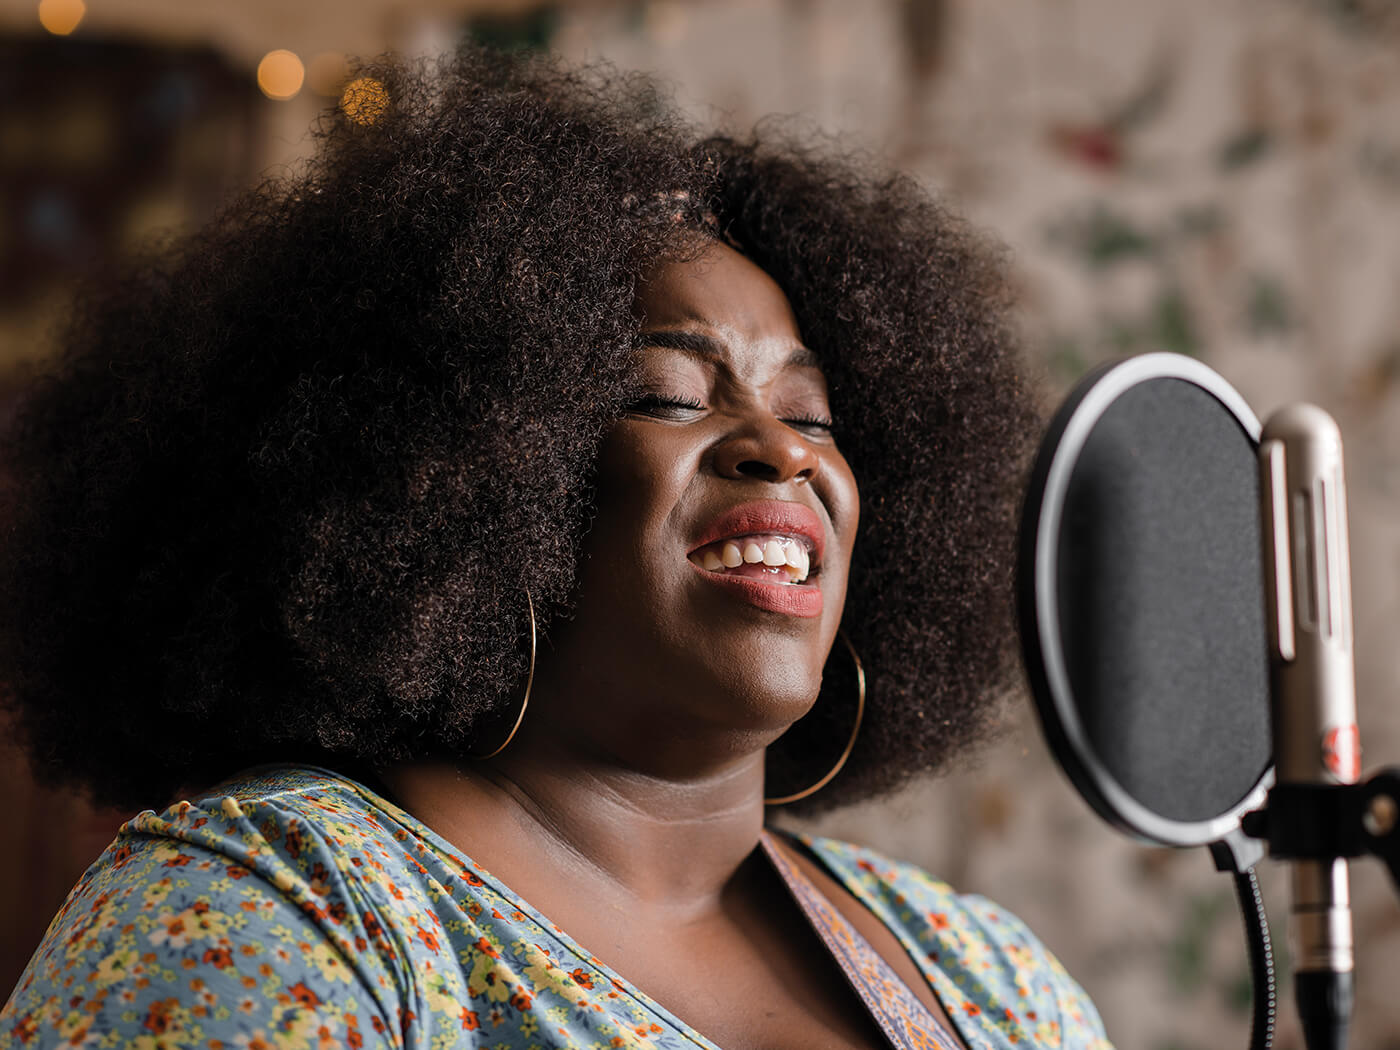 Yola on her journey from homelessness and poverty to writing an album with Dan Auerbach